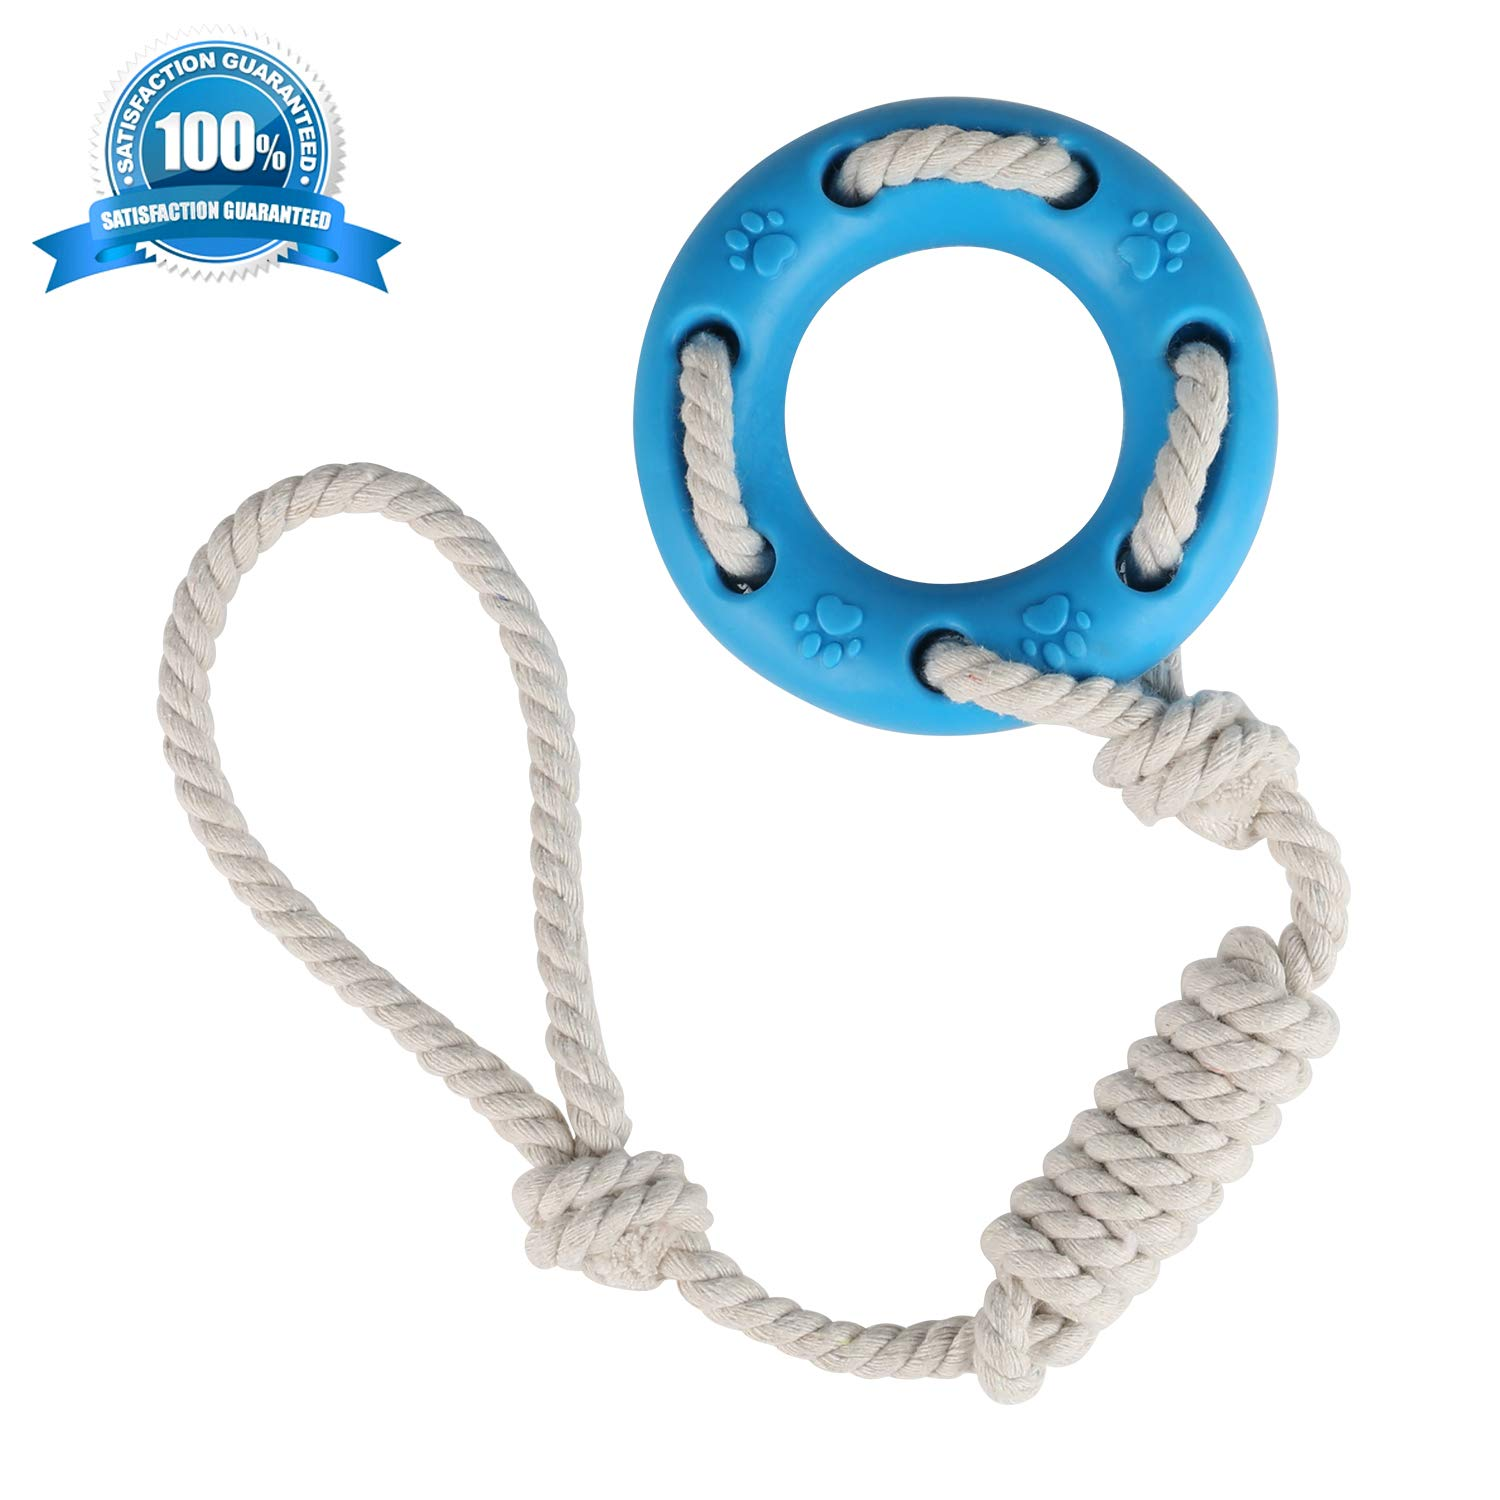 KAOSITONG Dog Chew Toy - Interactive Cotton Rope Toys Small Medium Large Dogs - Safe Non-toxic - Effective Tooth Cleaning